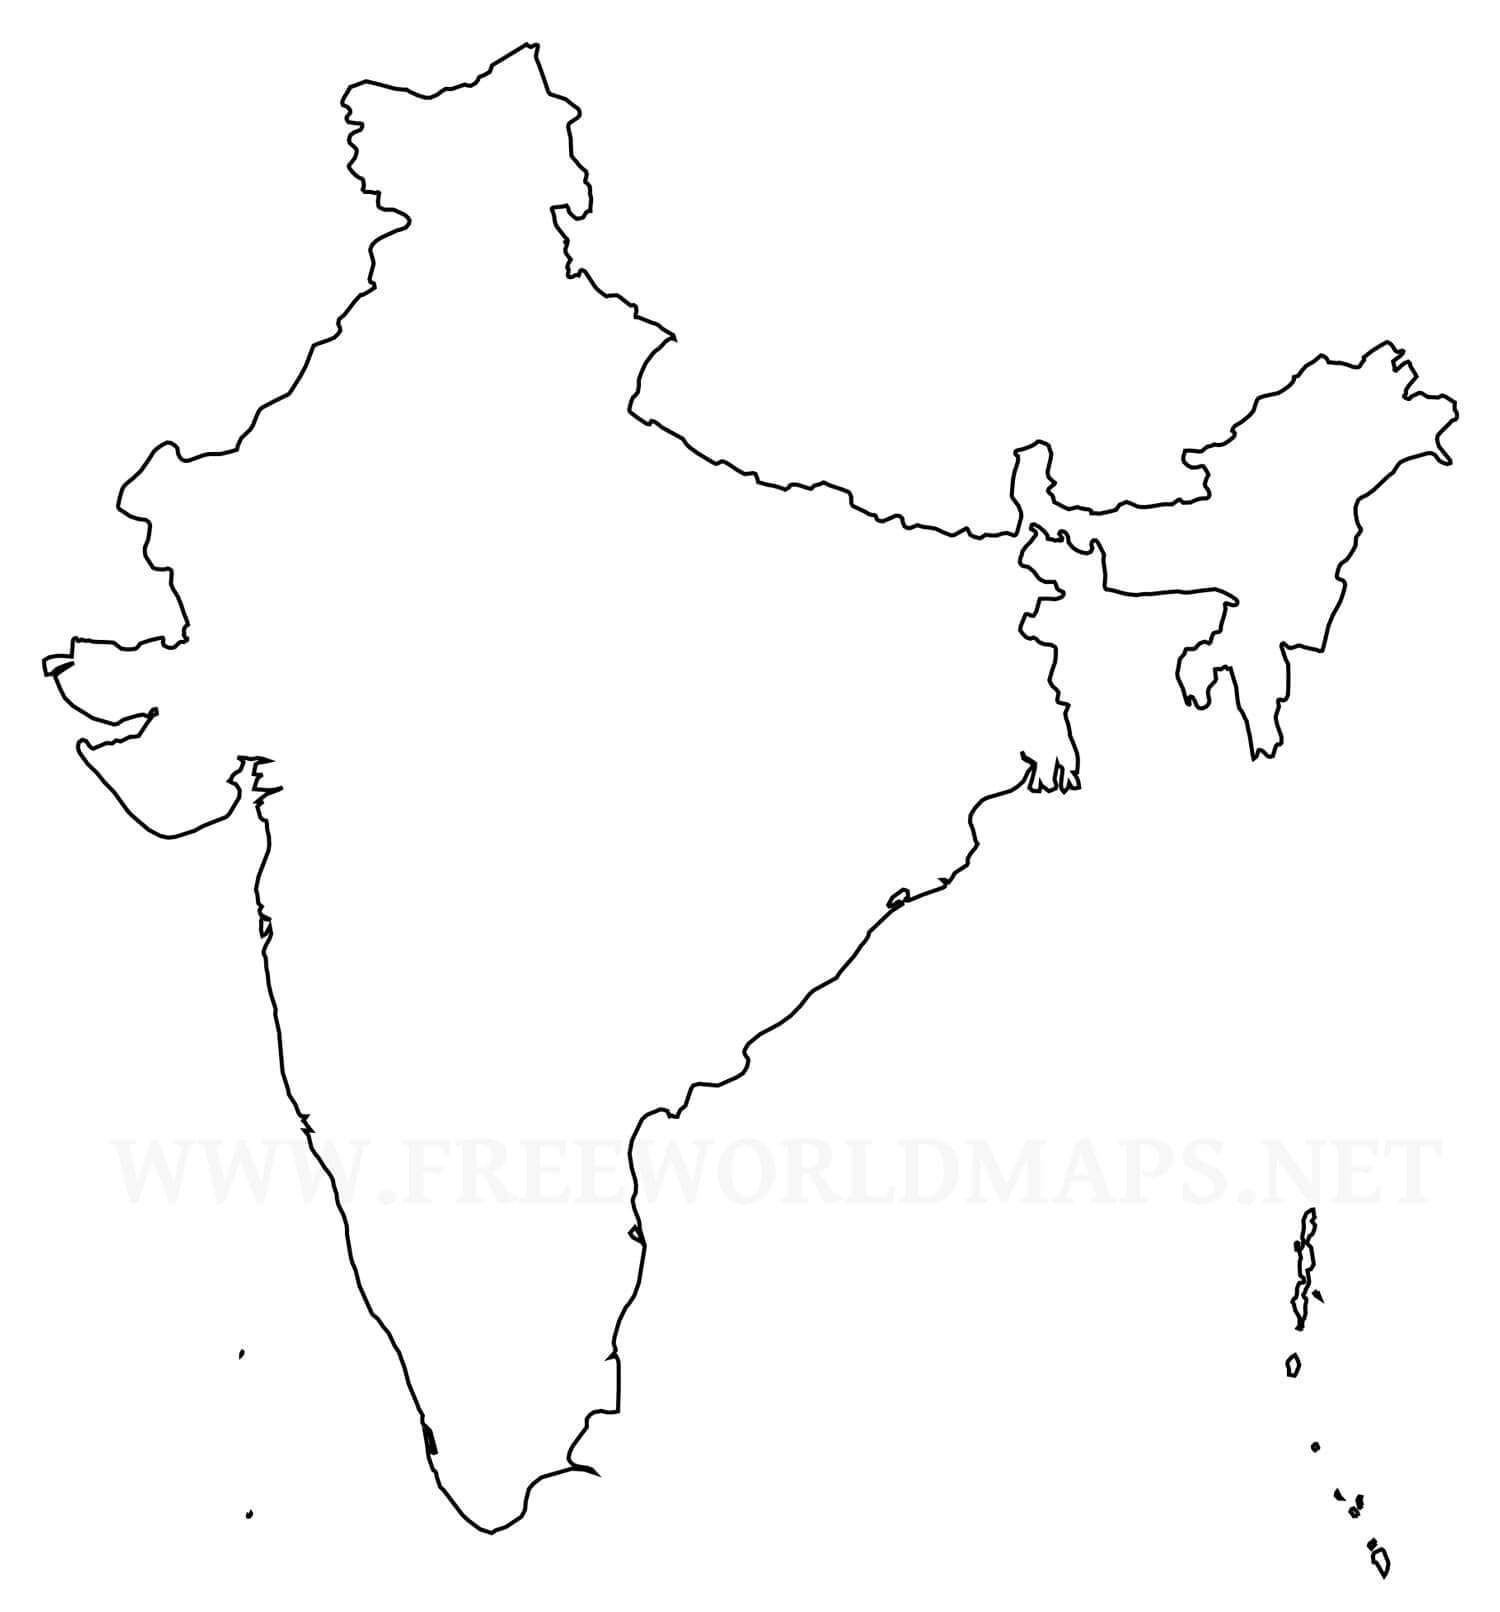 India Outline Map Hd Without Any Watermark